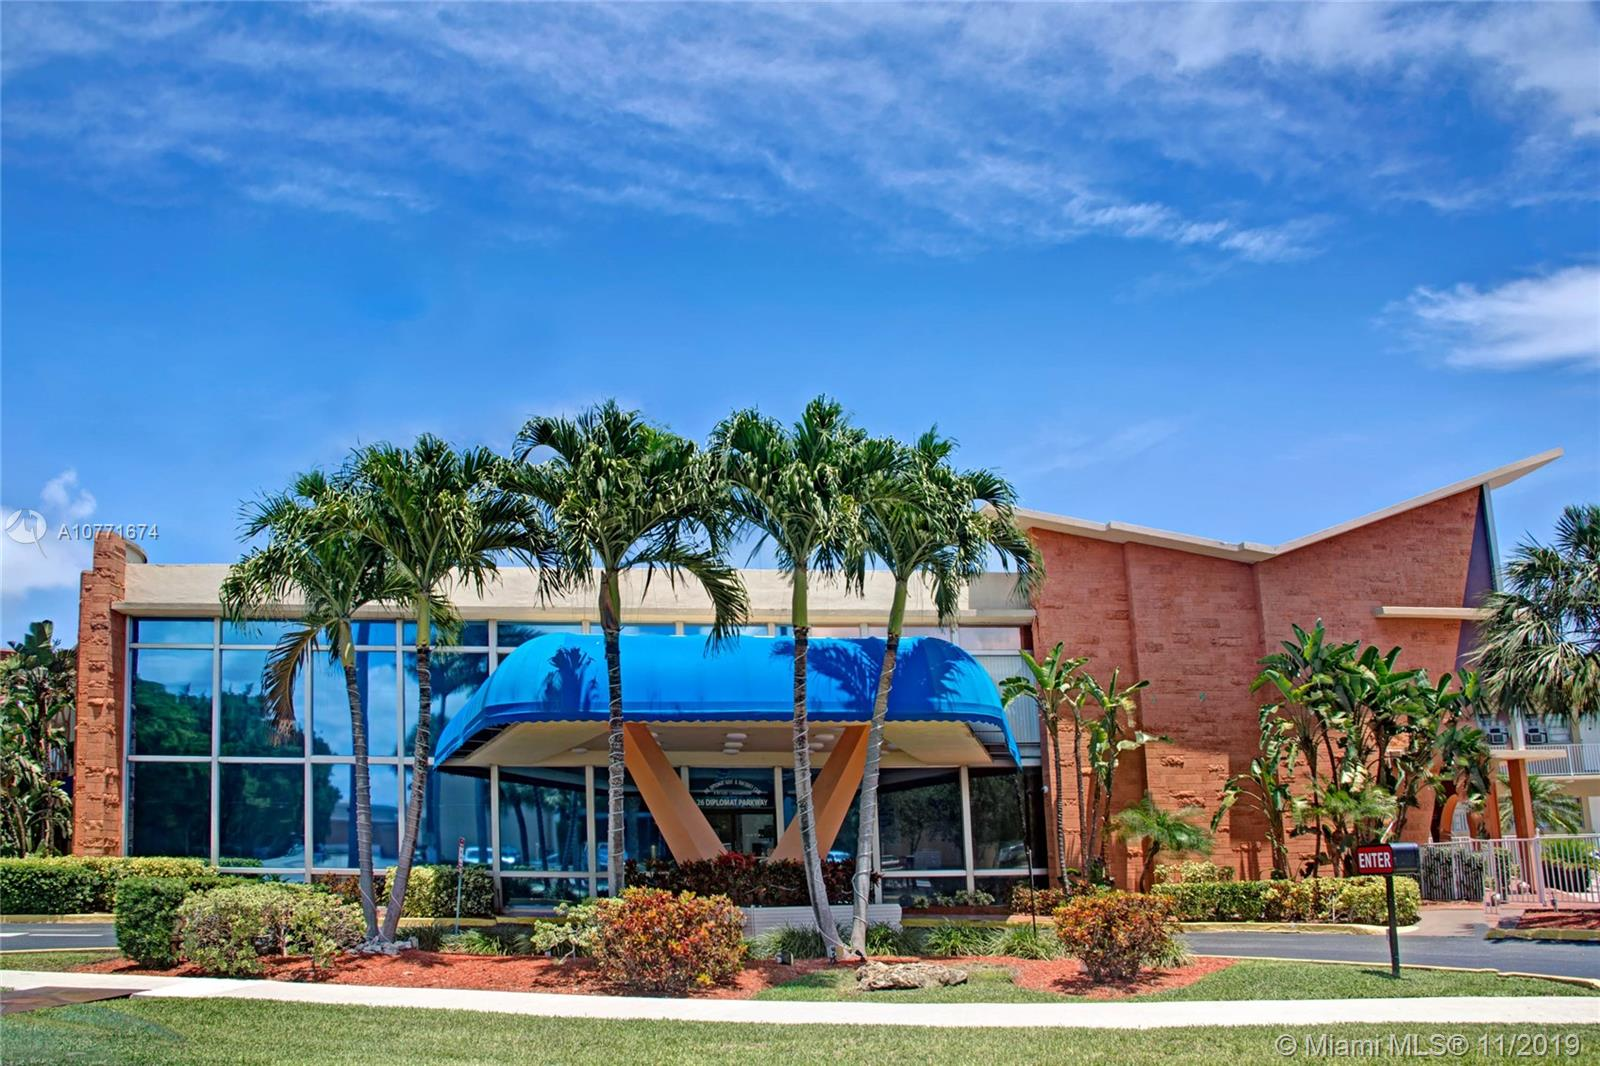 26  Diplomat Pkwy #2317 For Sale A10771674, FL